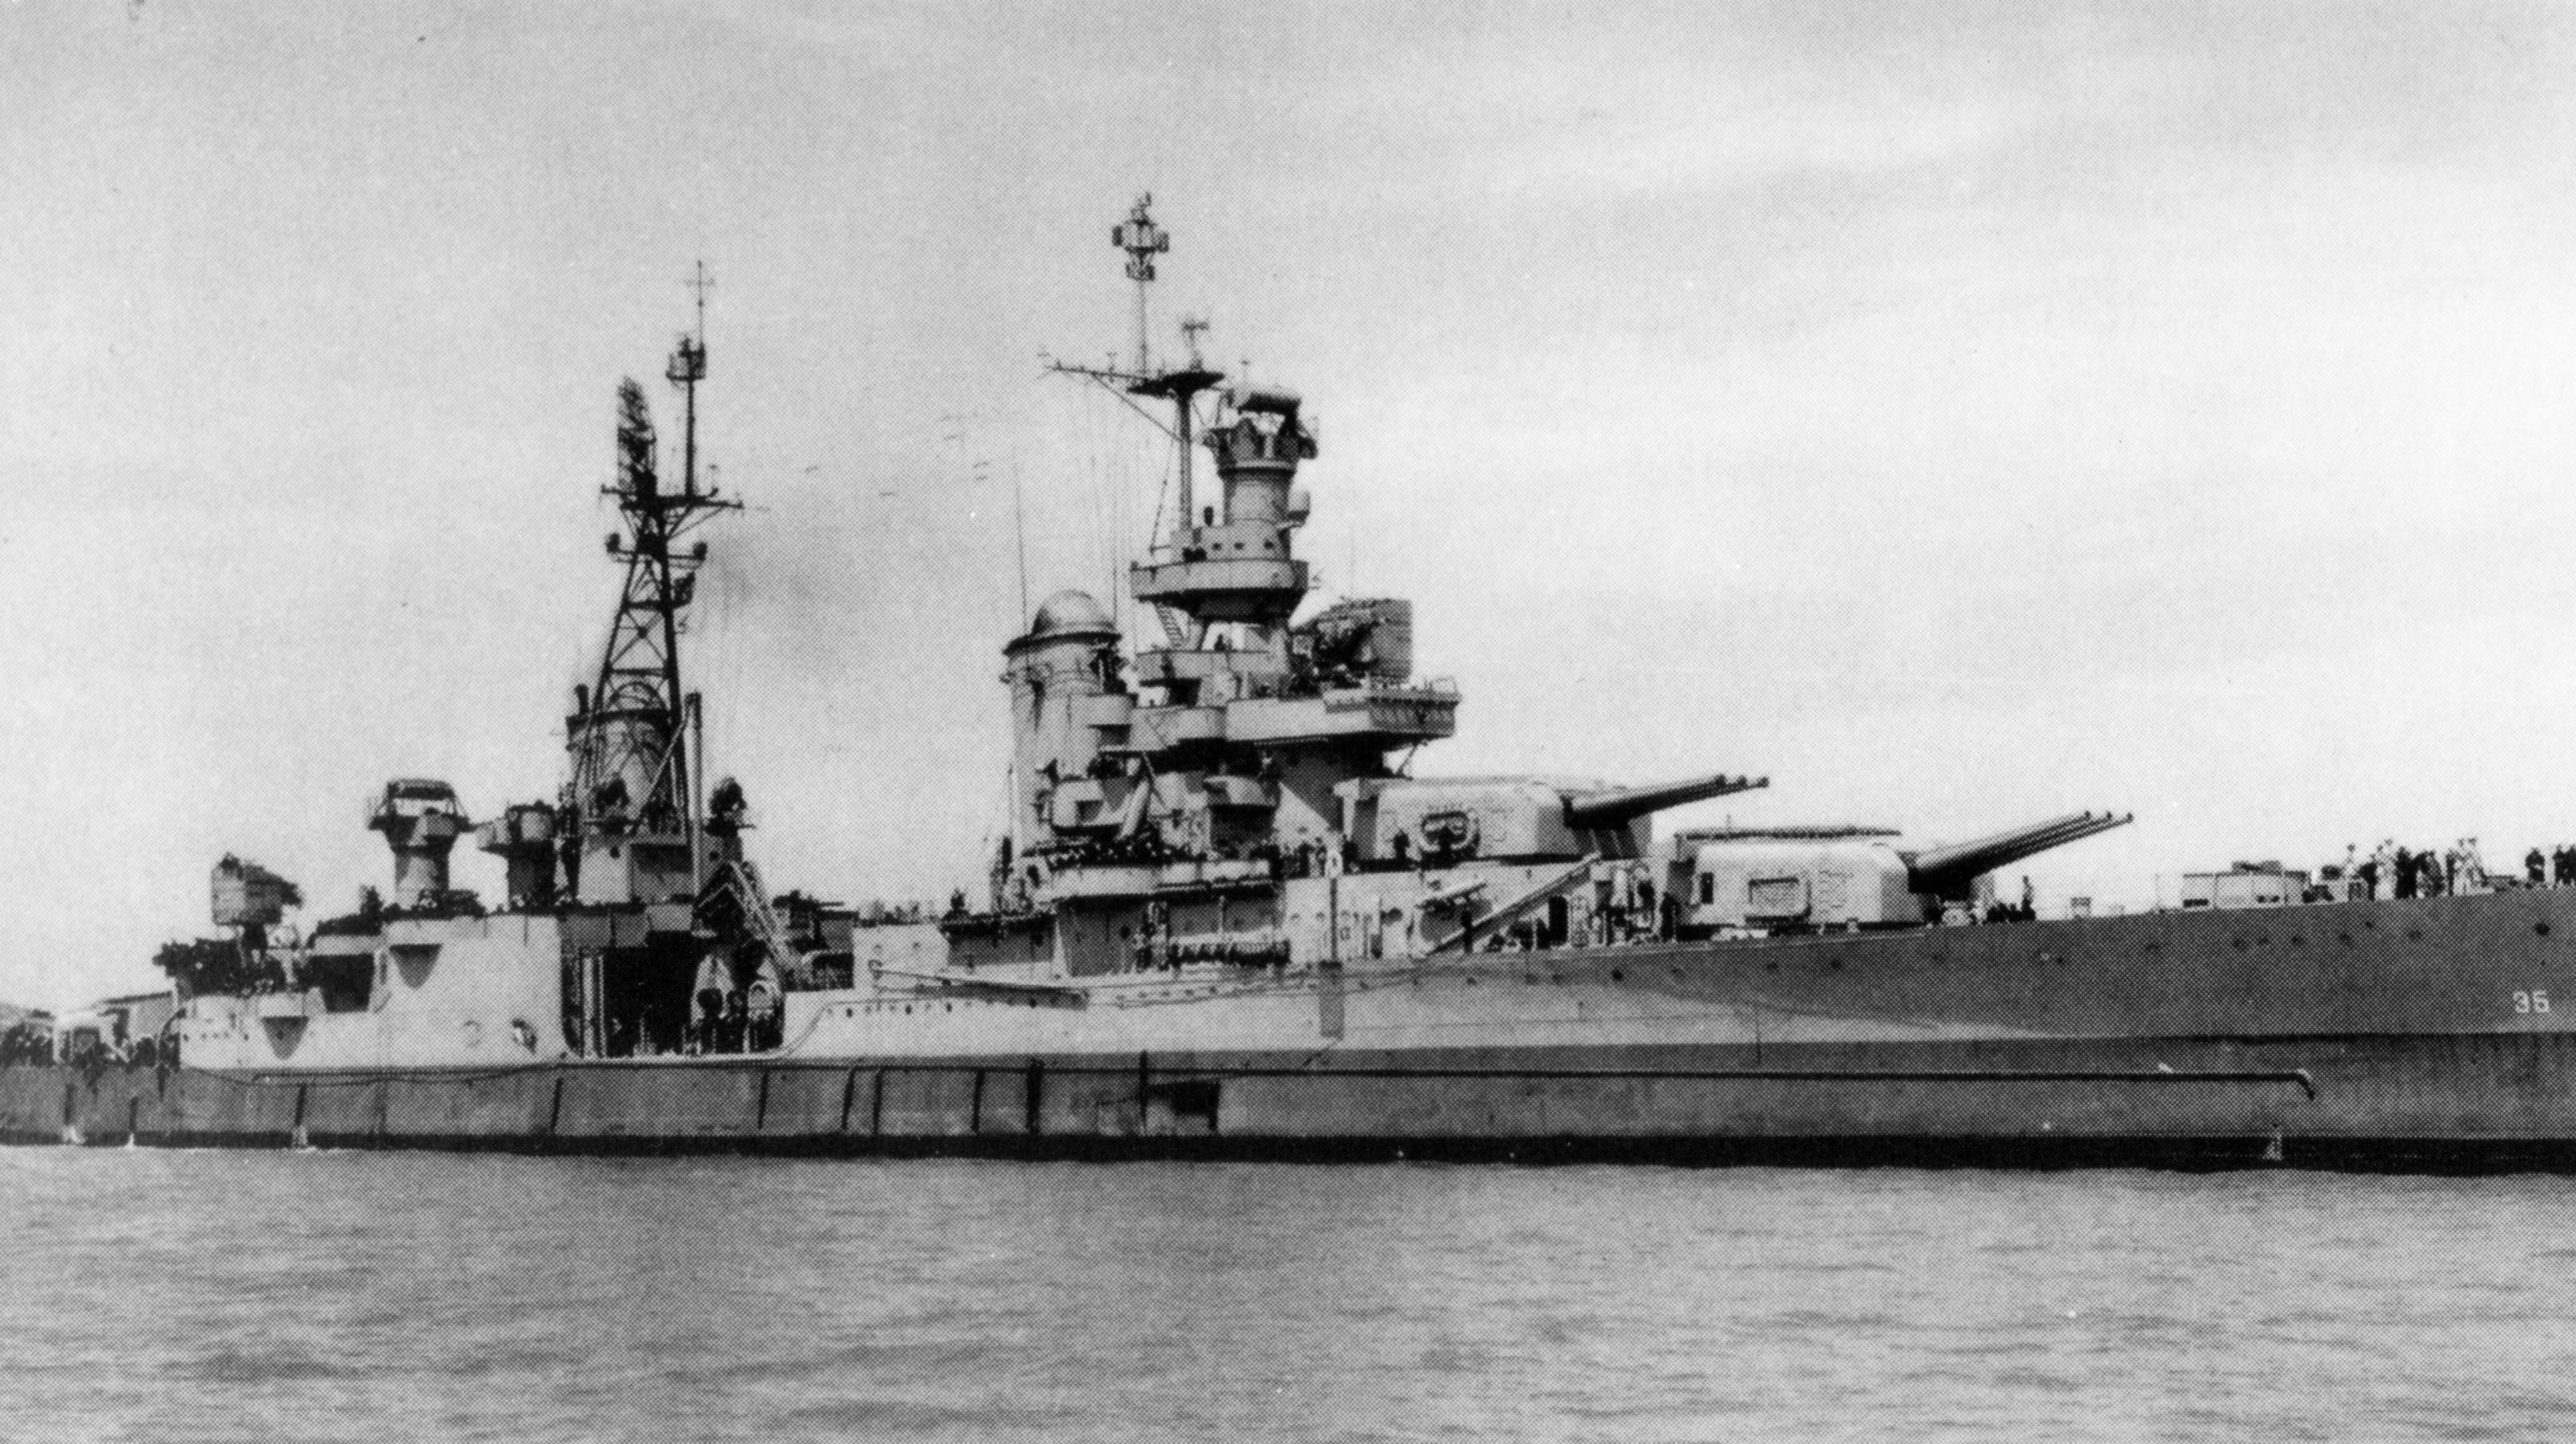 the sinking of the uss indianapolis In 1945, shortly after delivering components for the hiroshima atomic bomb to the island of tinian, the navy cruiser indianapolis was torpedoed by a japanese submarine.